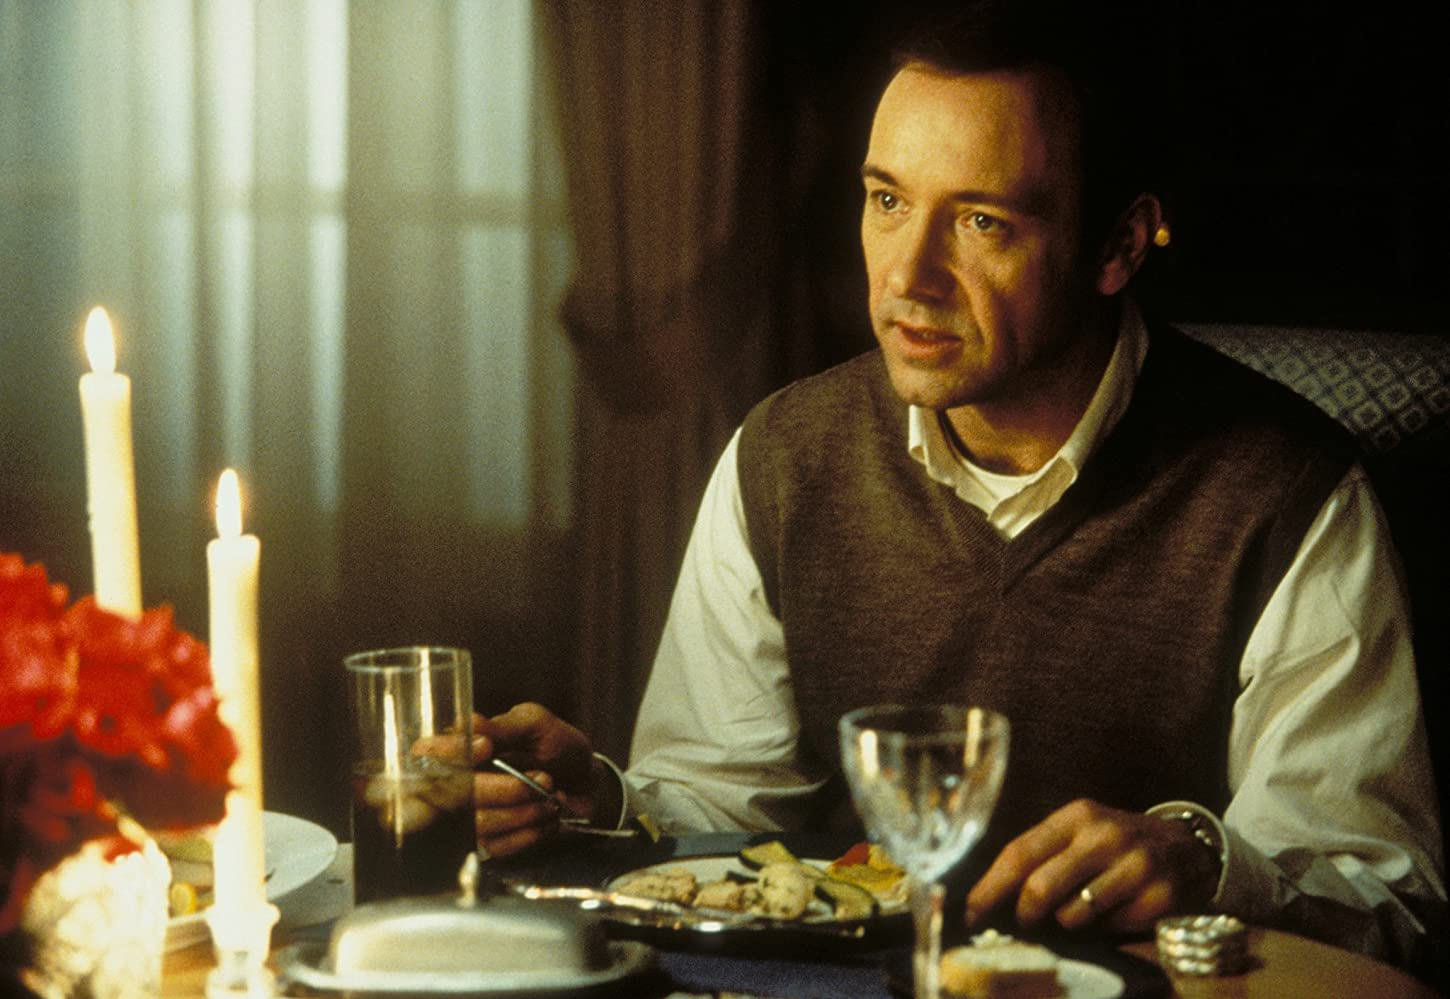 Kevin Spacey in American Beauty (1999)